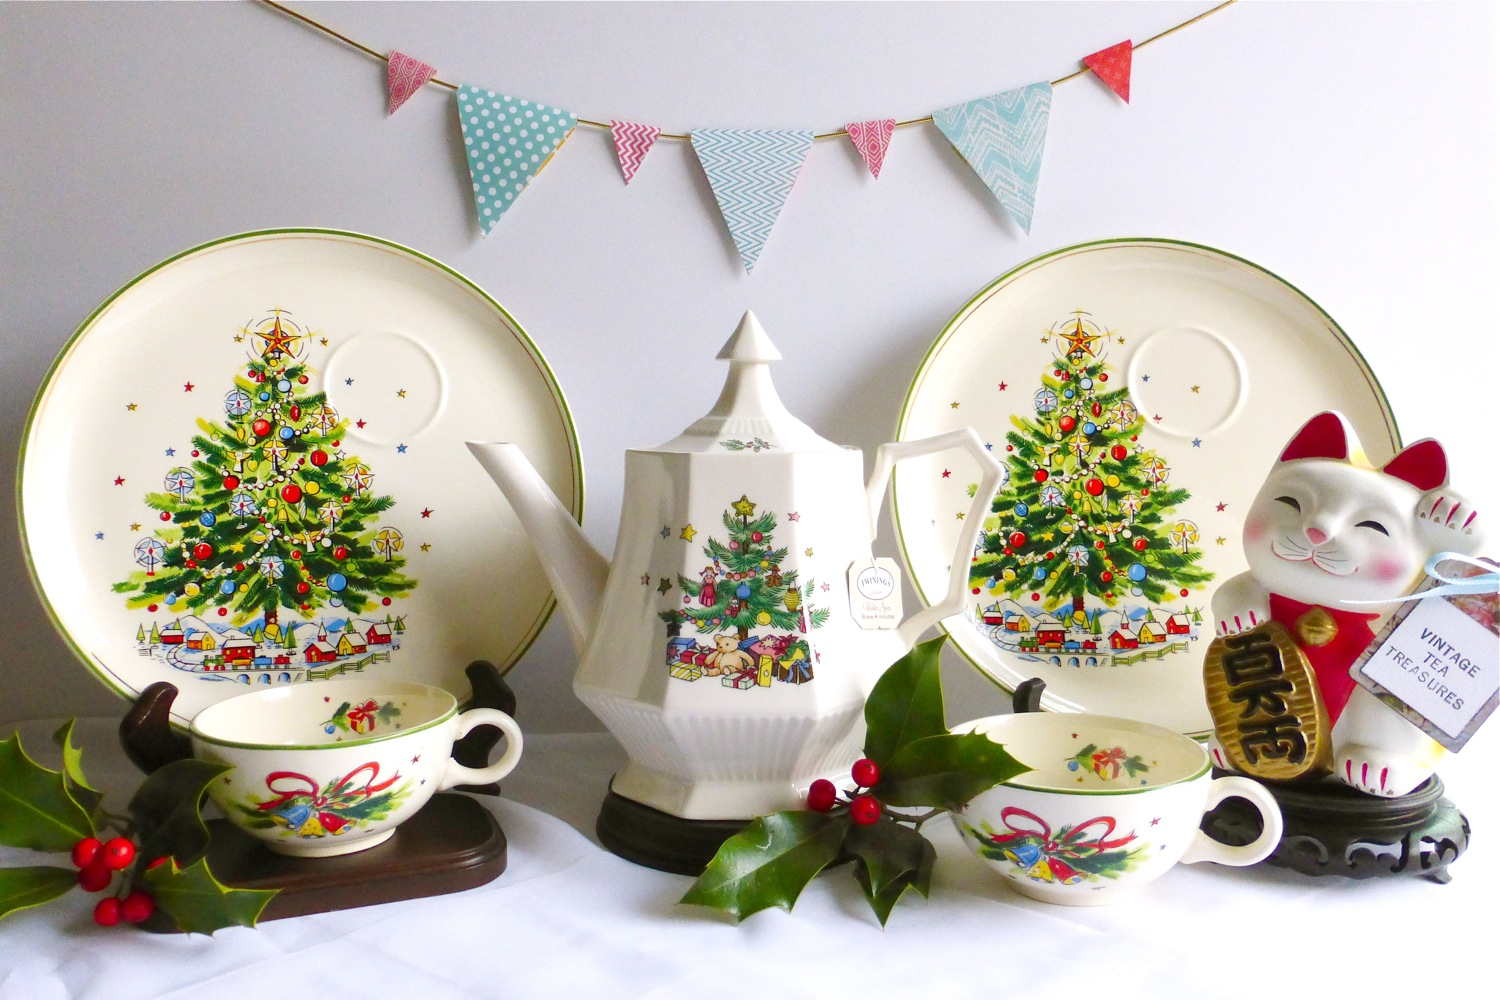 Viktor Schreckengost Christmas Eve Snack Sets, Christmas Tea Sets, Christmas Snack Sets, Nikko Christmas Tree Teapot, Vintage Tea Treasures on Etsy, Vintage Tea Treasures Holiday 2017 Sale